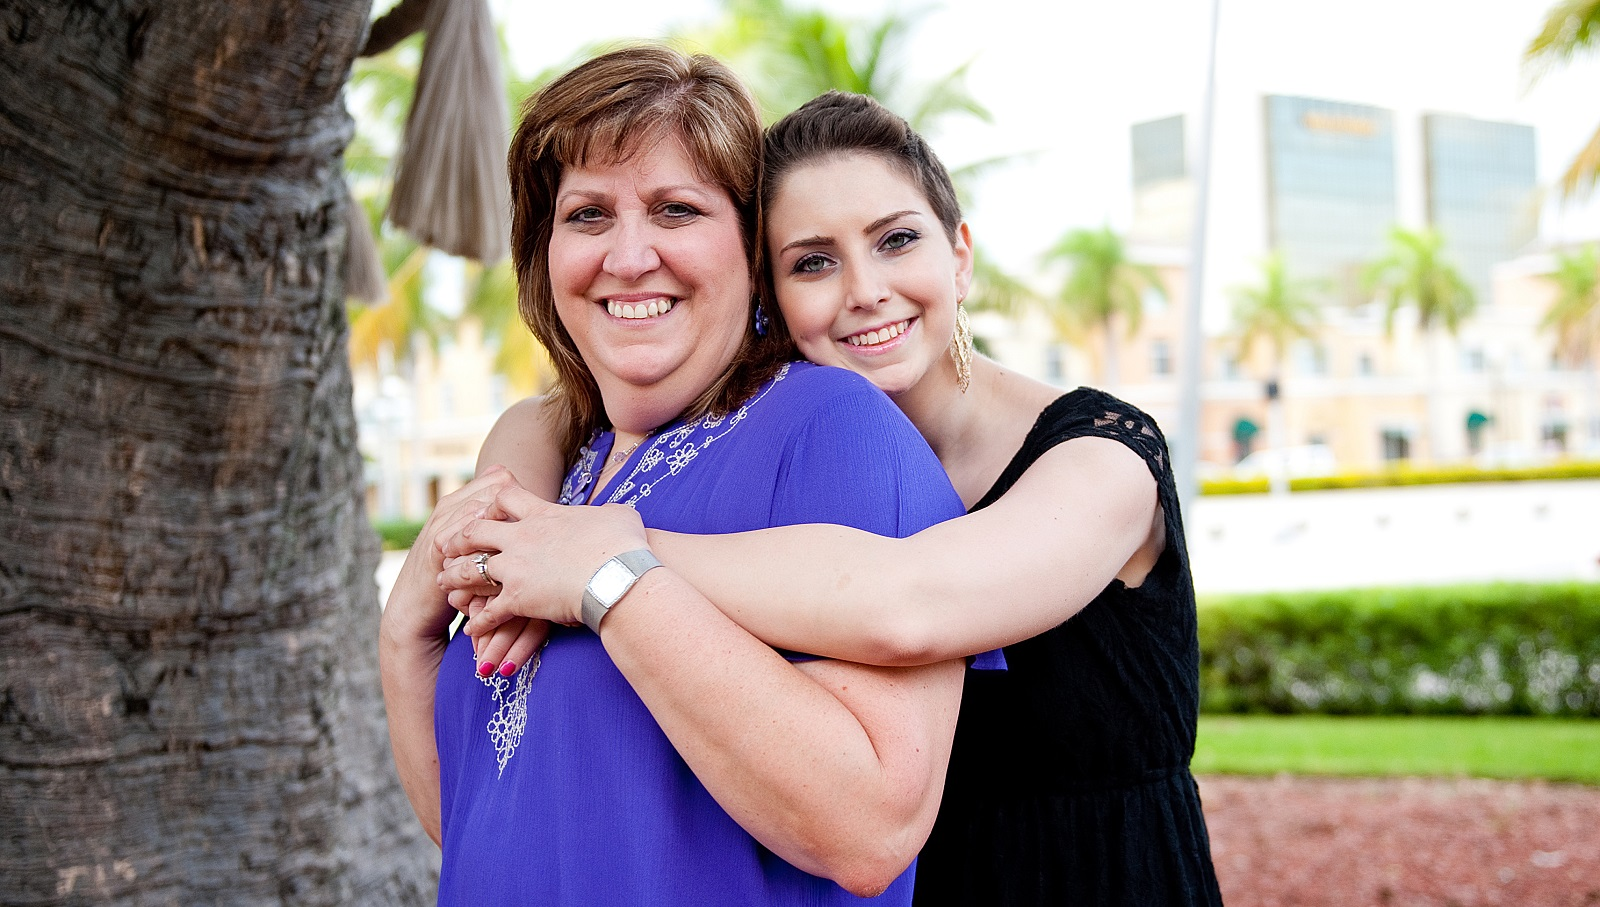 Lauren and her mom